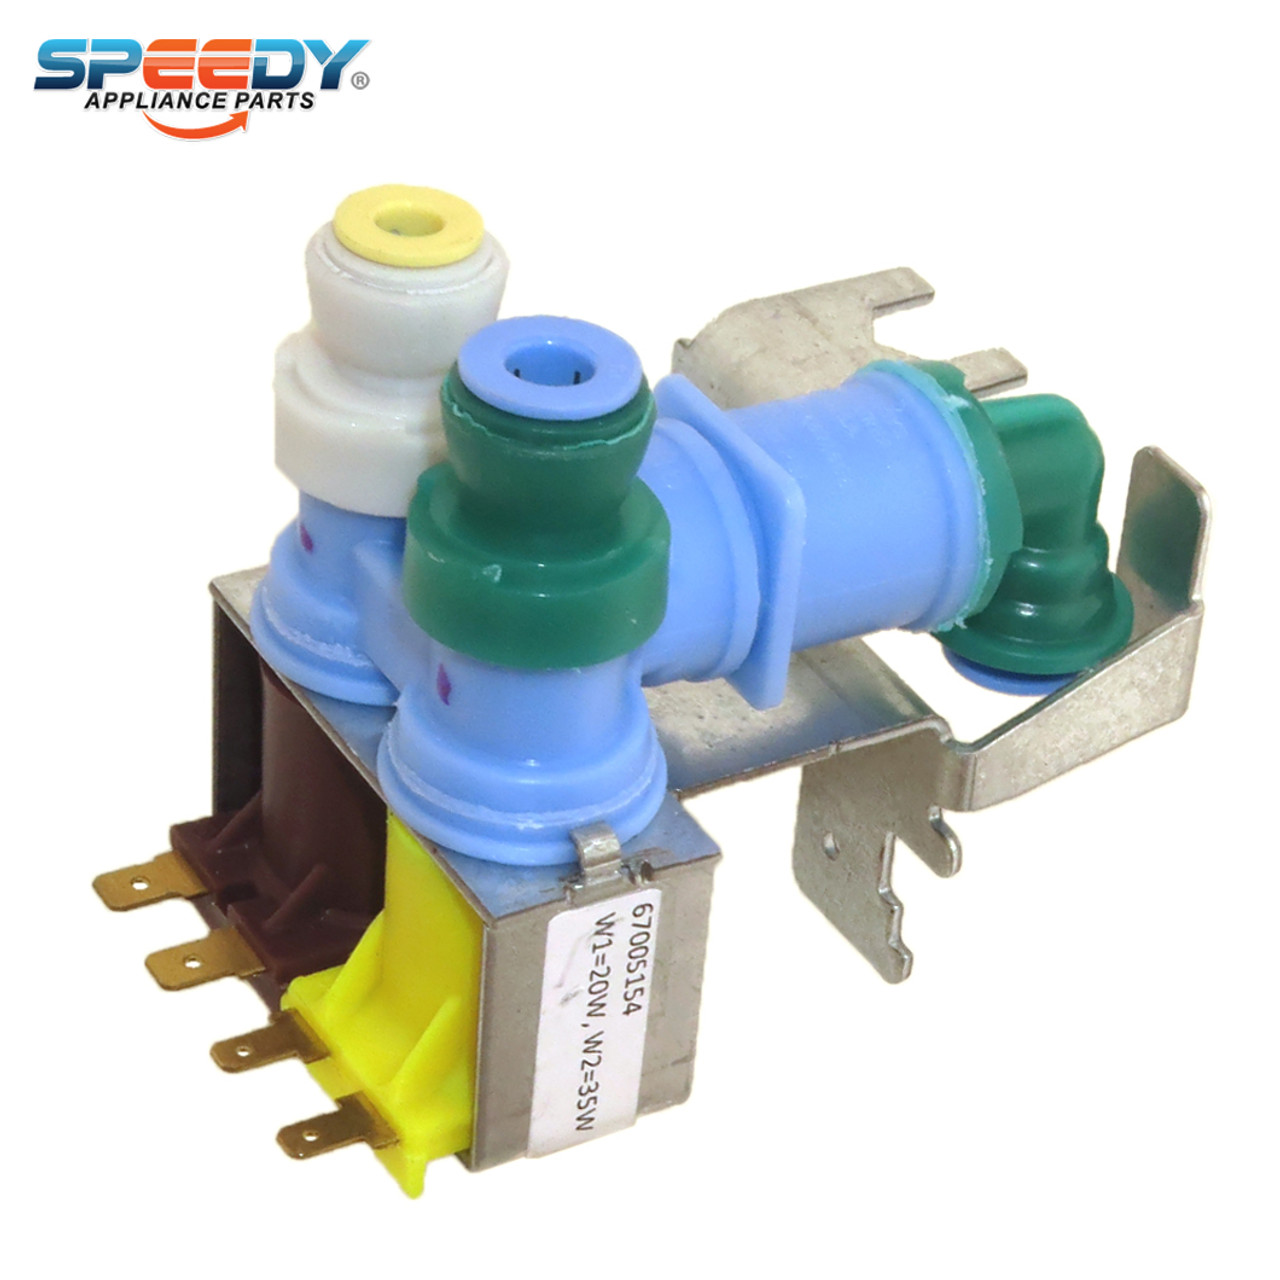 Part For Frigidaire Crosley Kenmore Refrigerator Water Inlet Valve Replacement